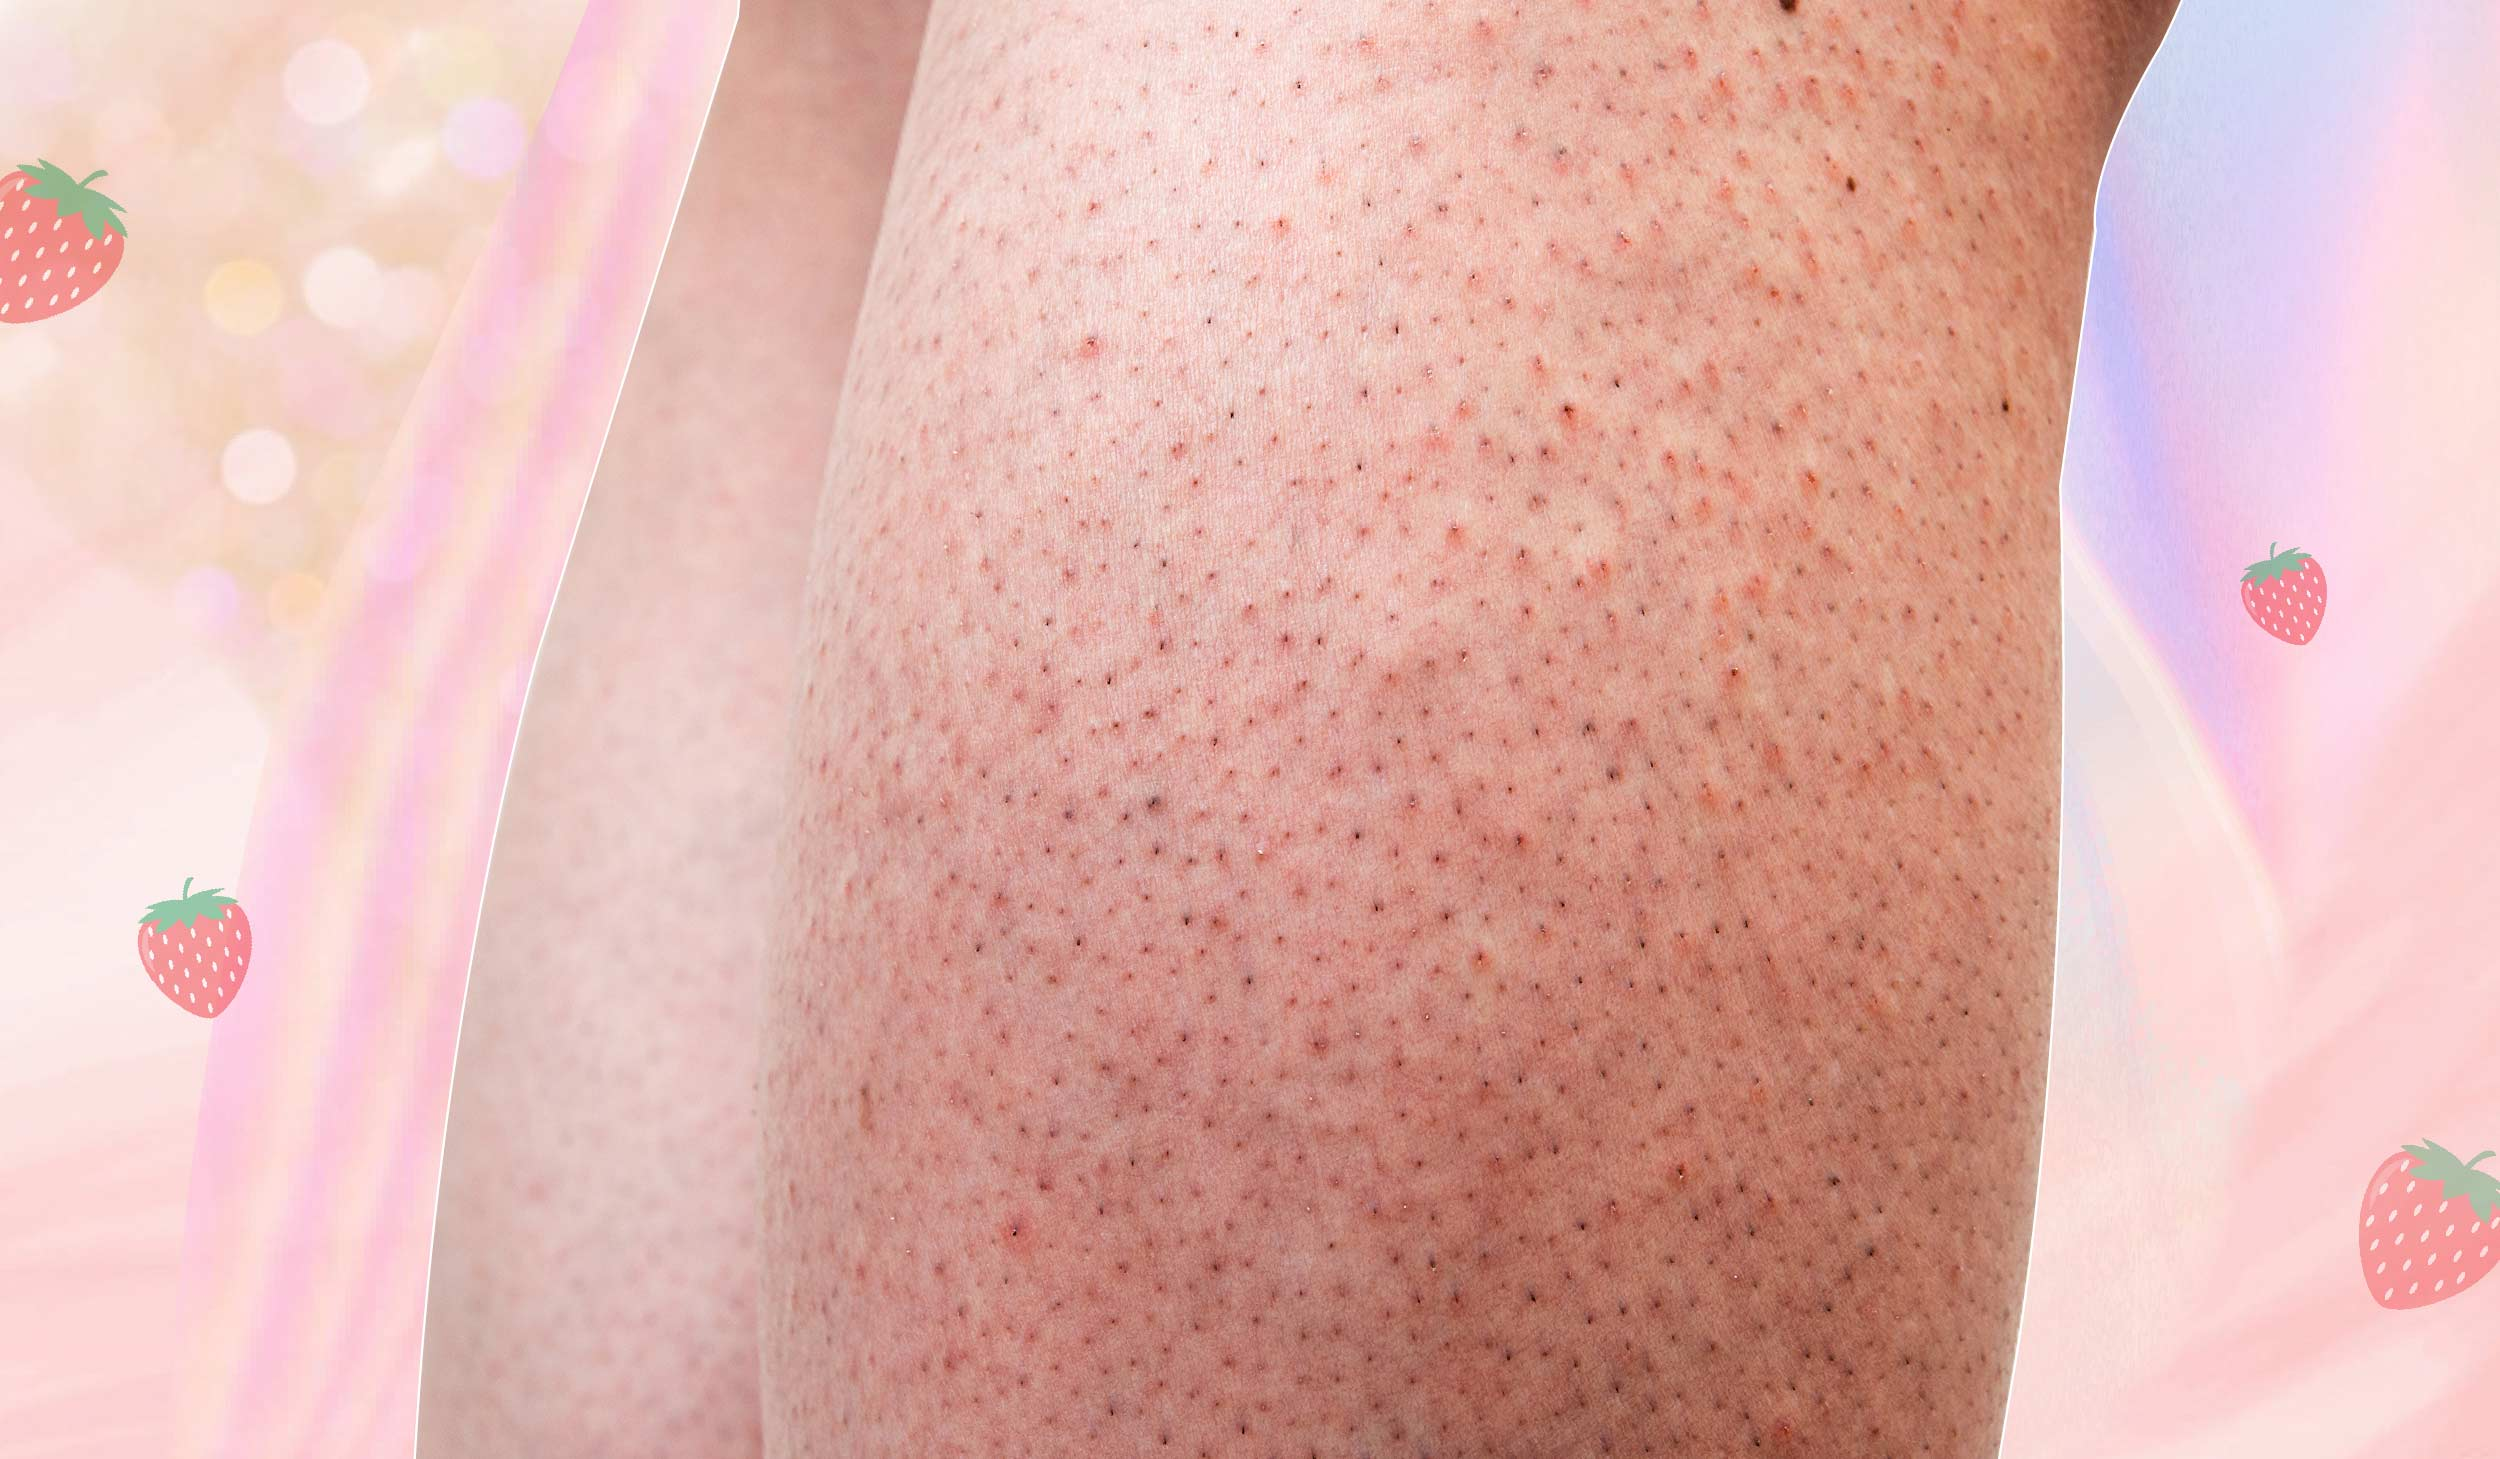 Strawberry Legs: What Those Tiny Dots Are & How To Get Rid Of Them